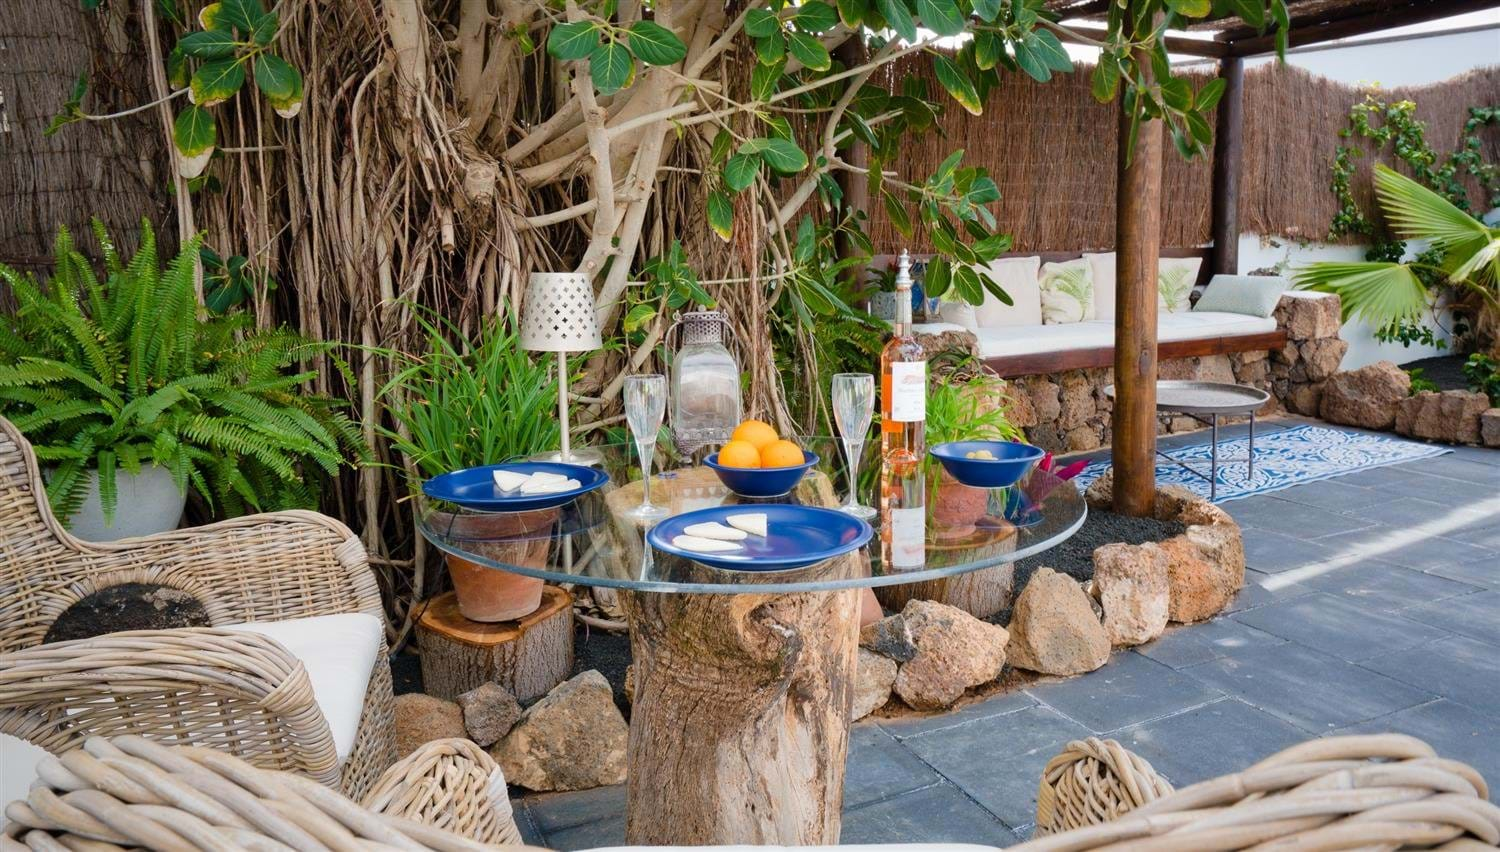 Outdoor dining on a tree stump table at Finca Botanico in Lanzarote